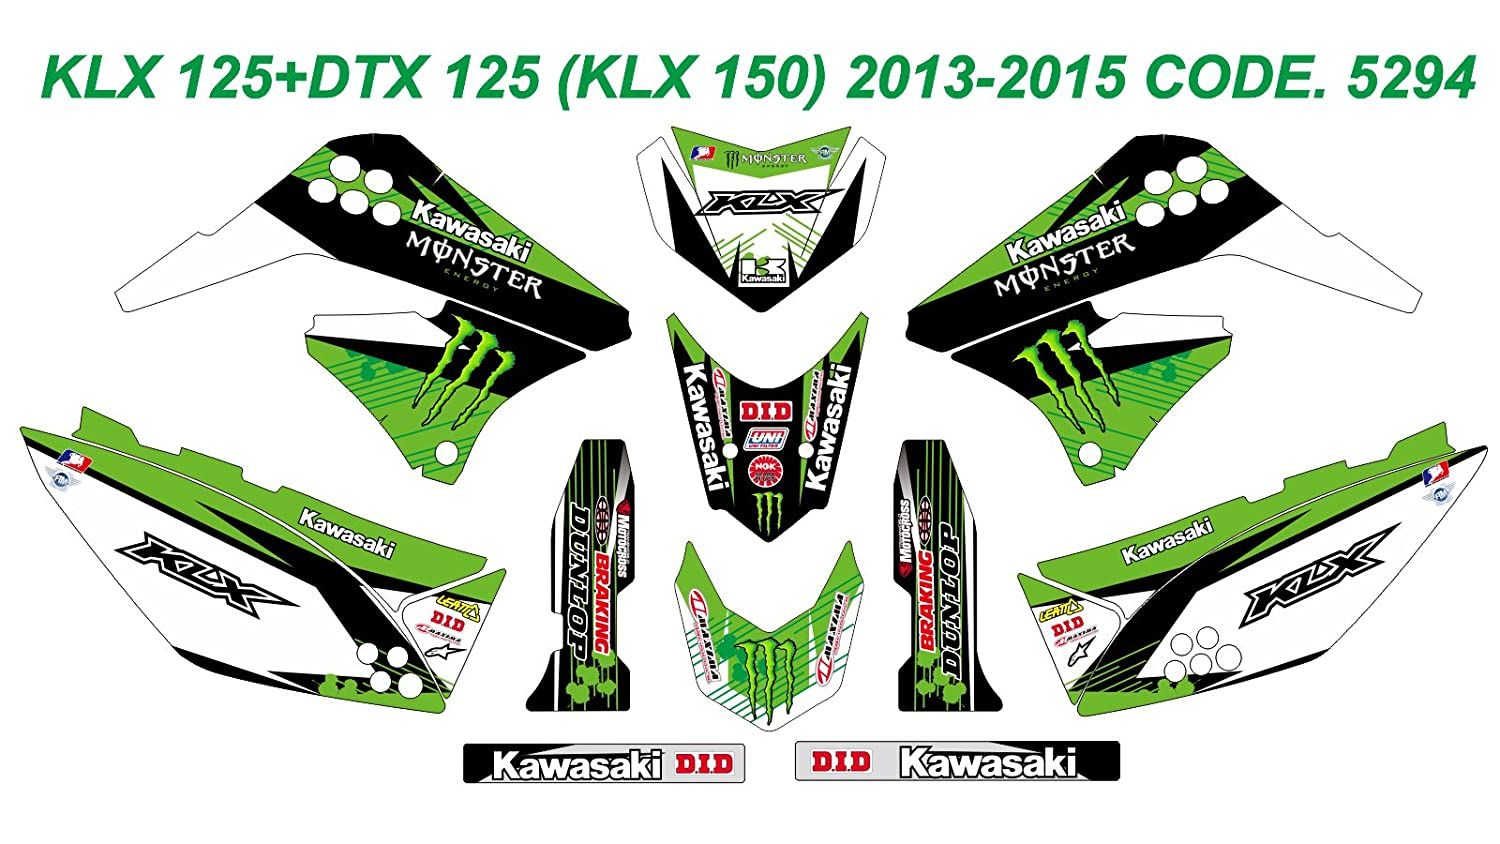 5294 KAWASAKI KLX 125+DTX 125 (KLX 150) 2013-2015 DECALS STICKERS GRAPHICS KIT Dog Racing Design